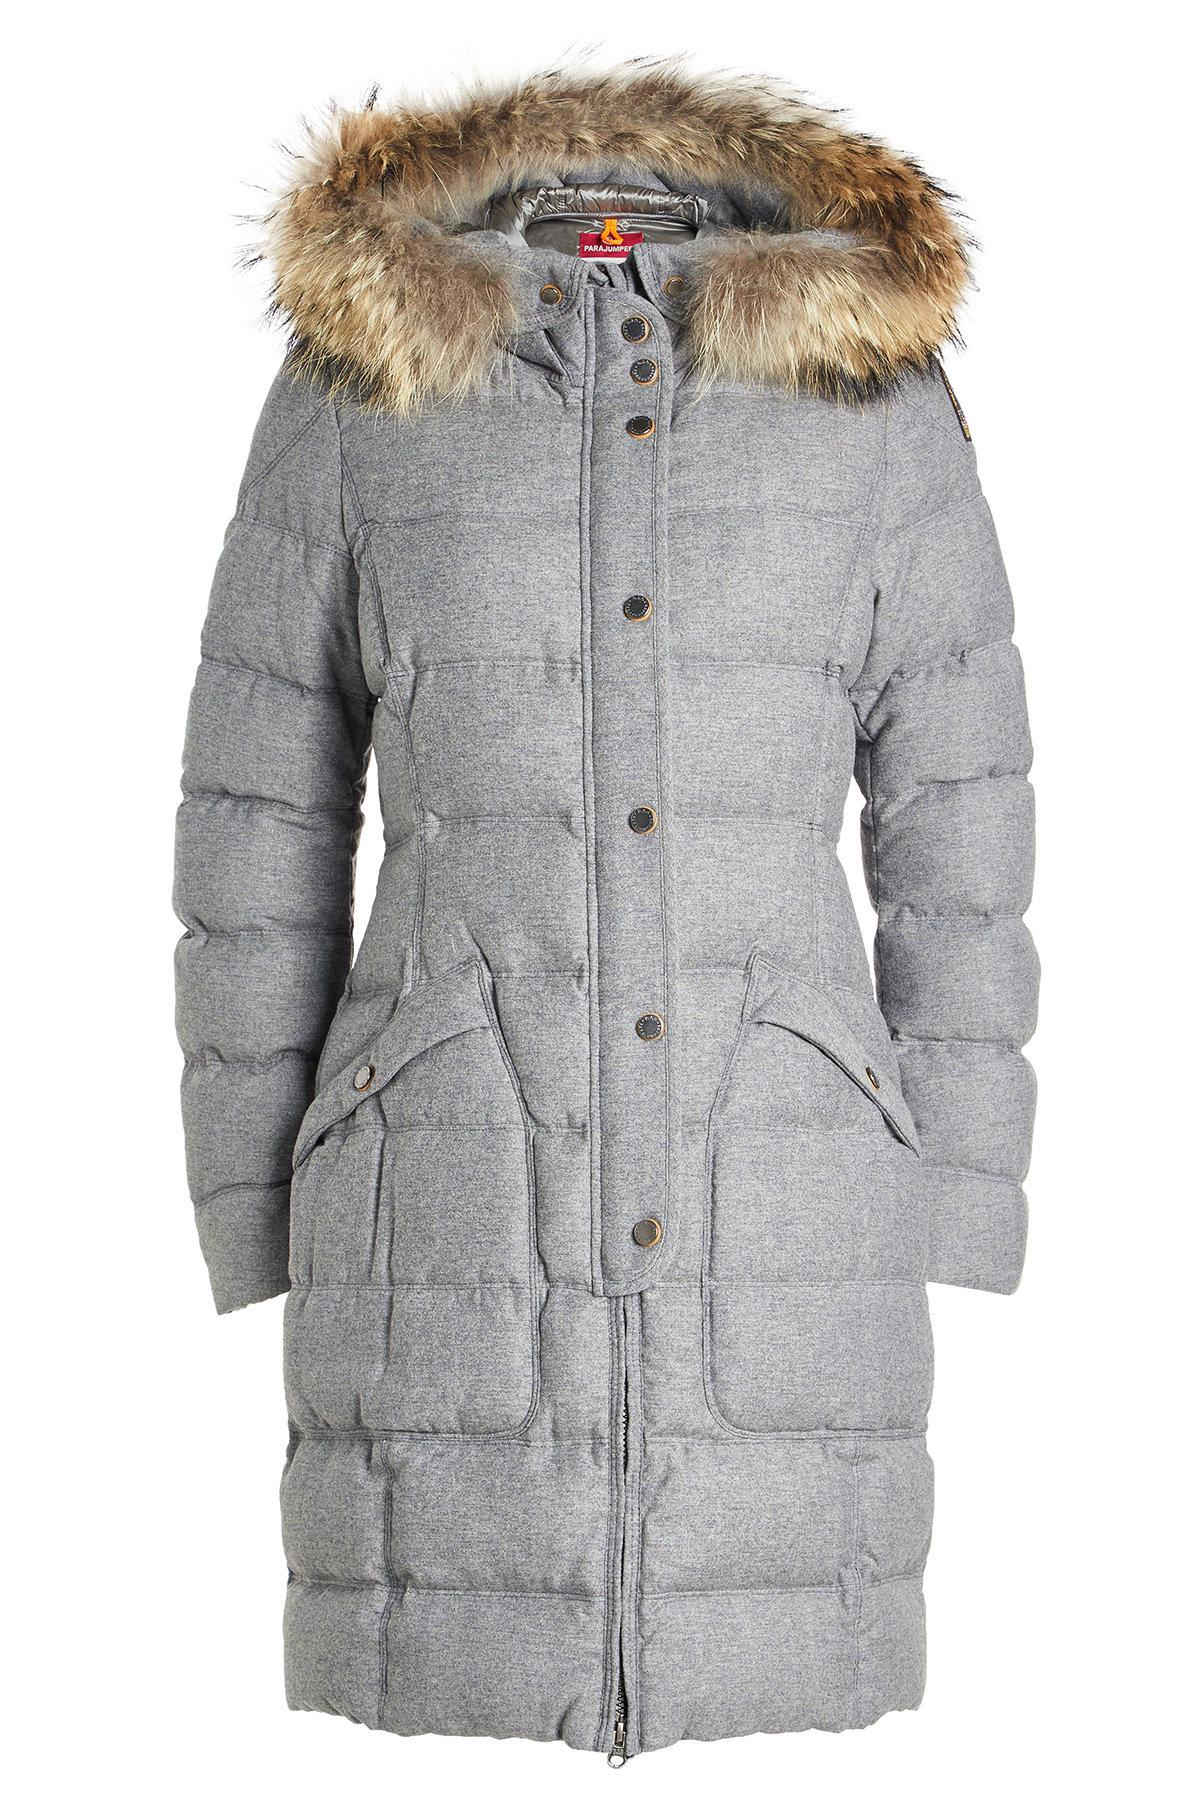 parajumpers down filled hooded jacket